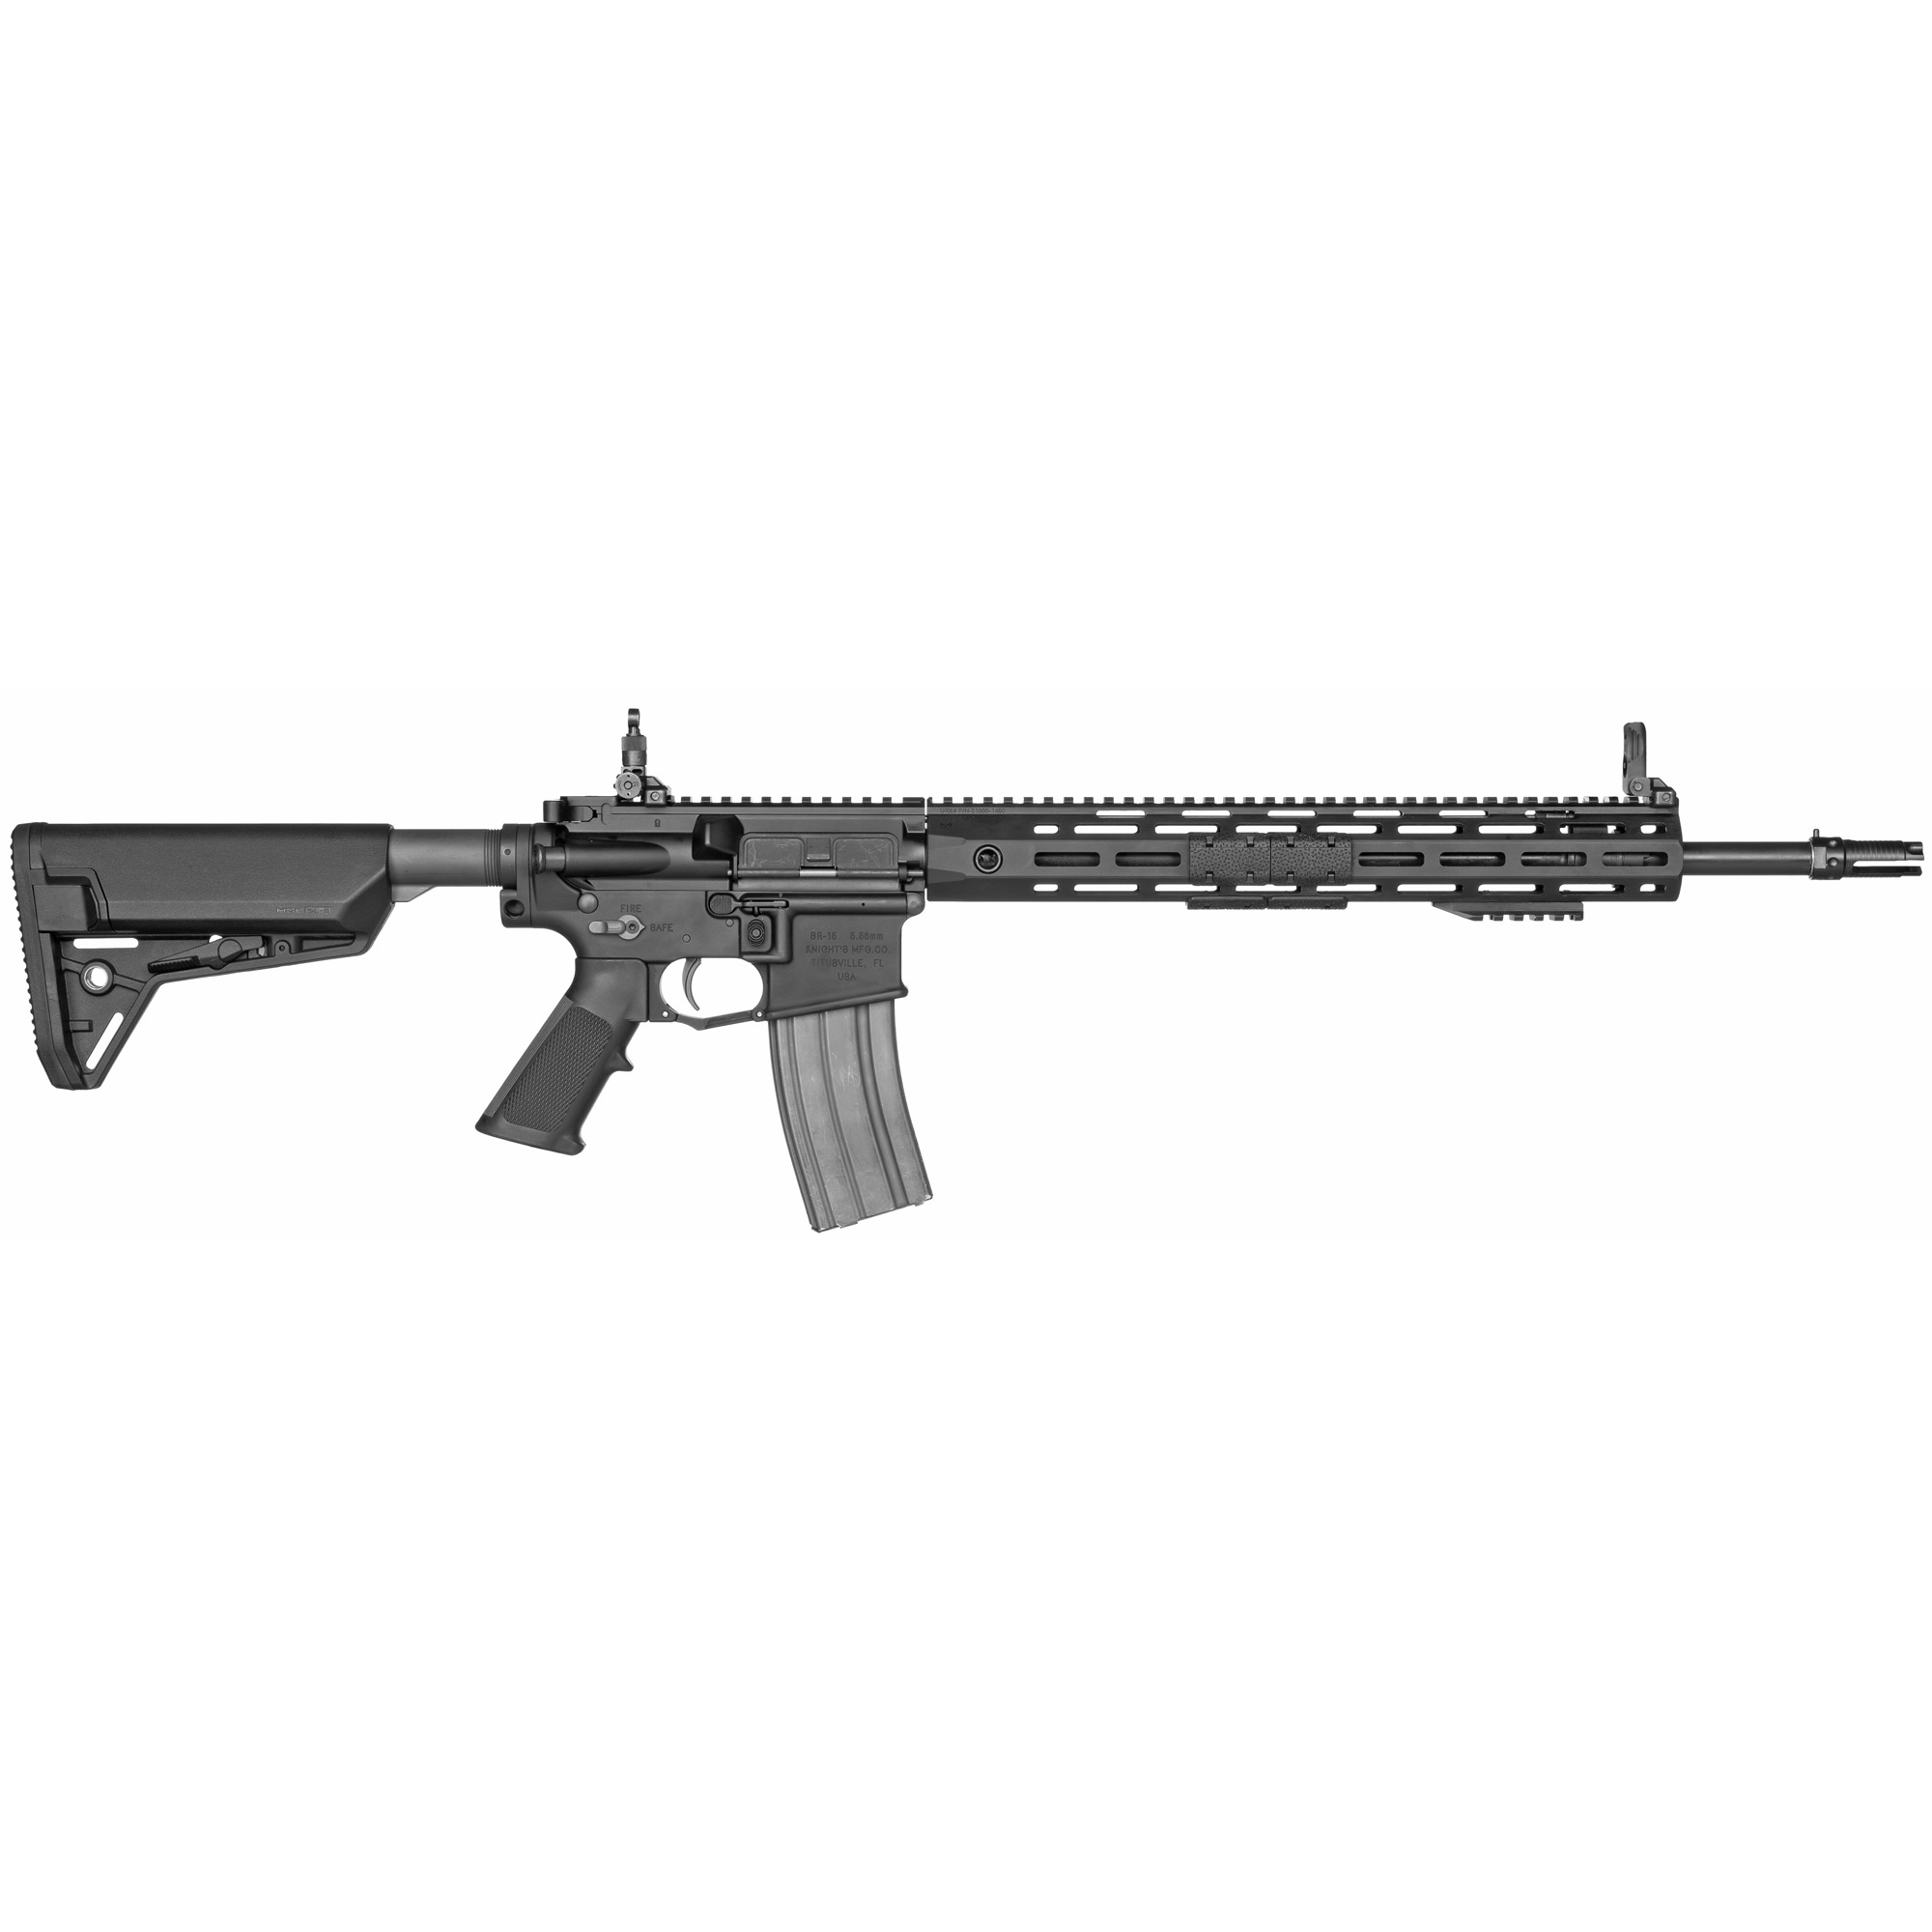 """The Knight's SR-15 Light Precision Rifle Mod 2 is the answer for 5.56mm shooters who want a lightweight match weapon system. The LPR utilizes an 18"""" Match Grade Stainless Steel barrel with a Custom Match chamber and 556QDC Flash Eliminator. Additional features include a URX 4 handguard with M-LOK mounting points"""" Mod 2 Gas System"""" standard ambidextrous lower receiver and 200m-600m adjustable micro sights."""